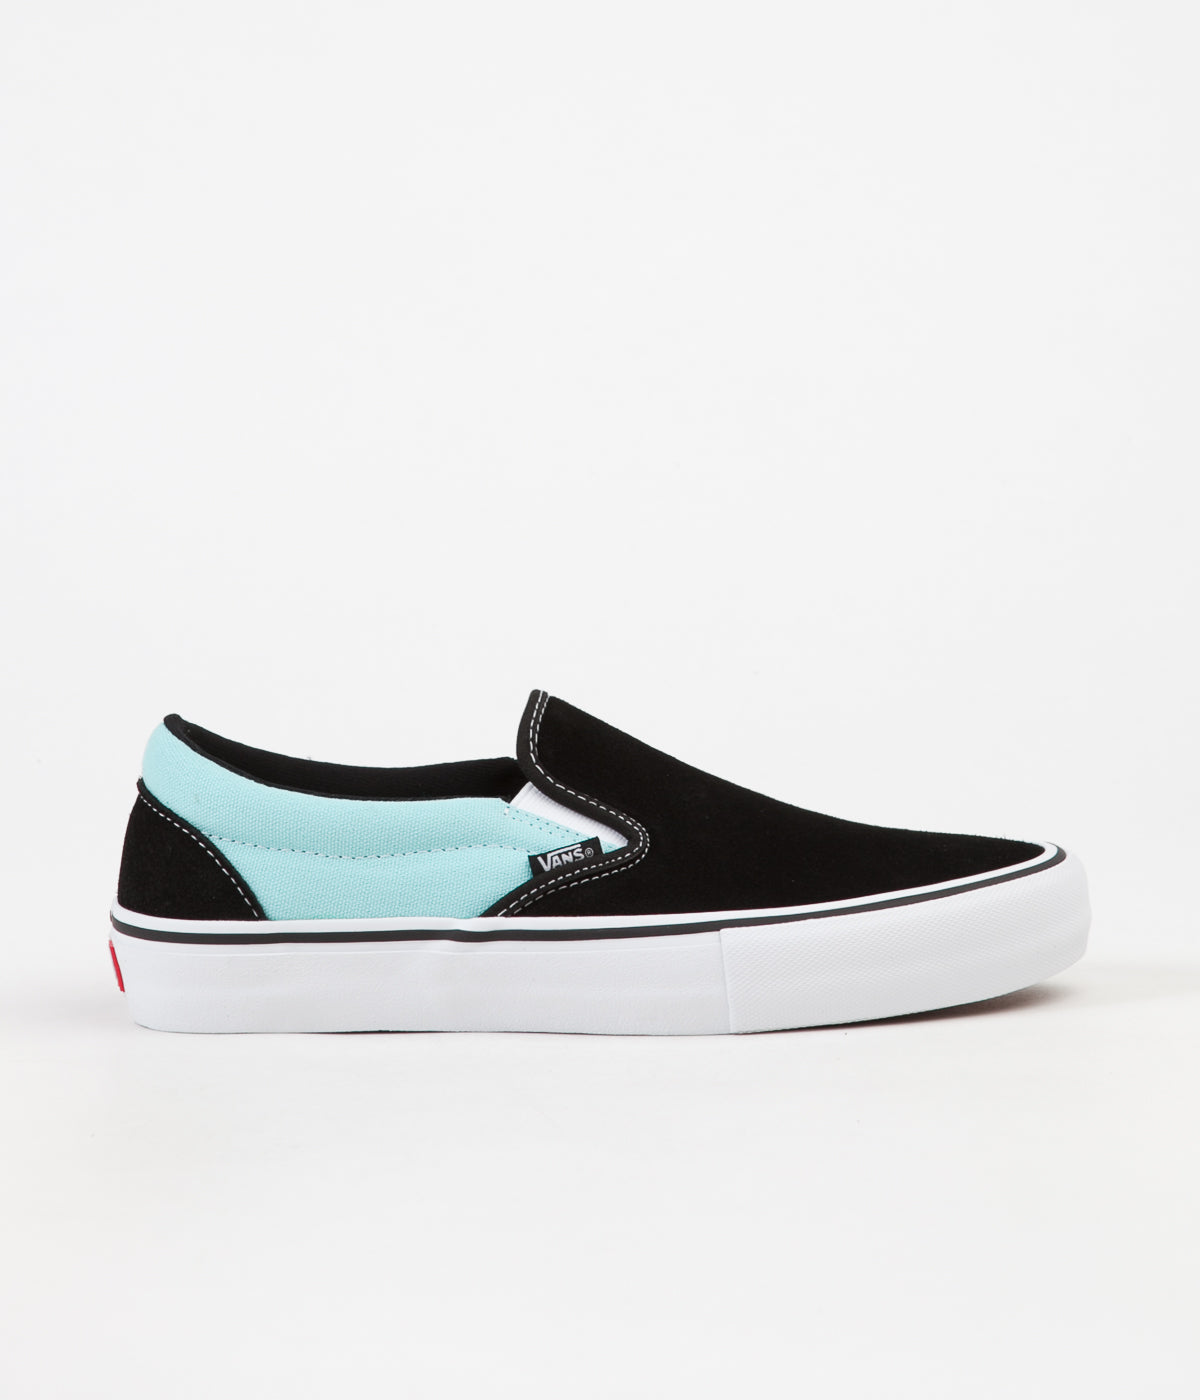 ae19bdc768 ... Vans Slip On Pro Asymmetry Shoes - Black   Blue   Rose ...